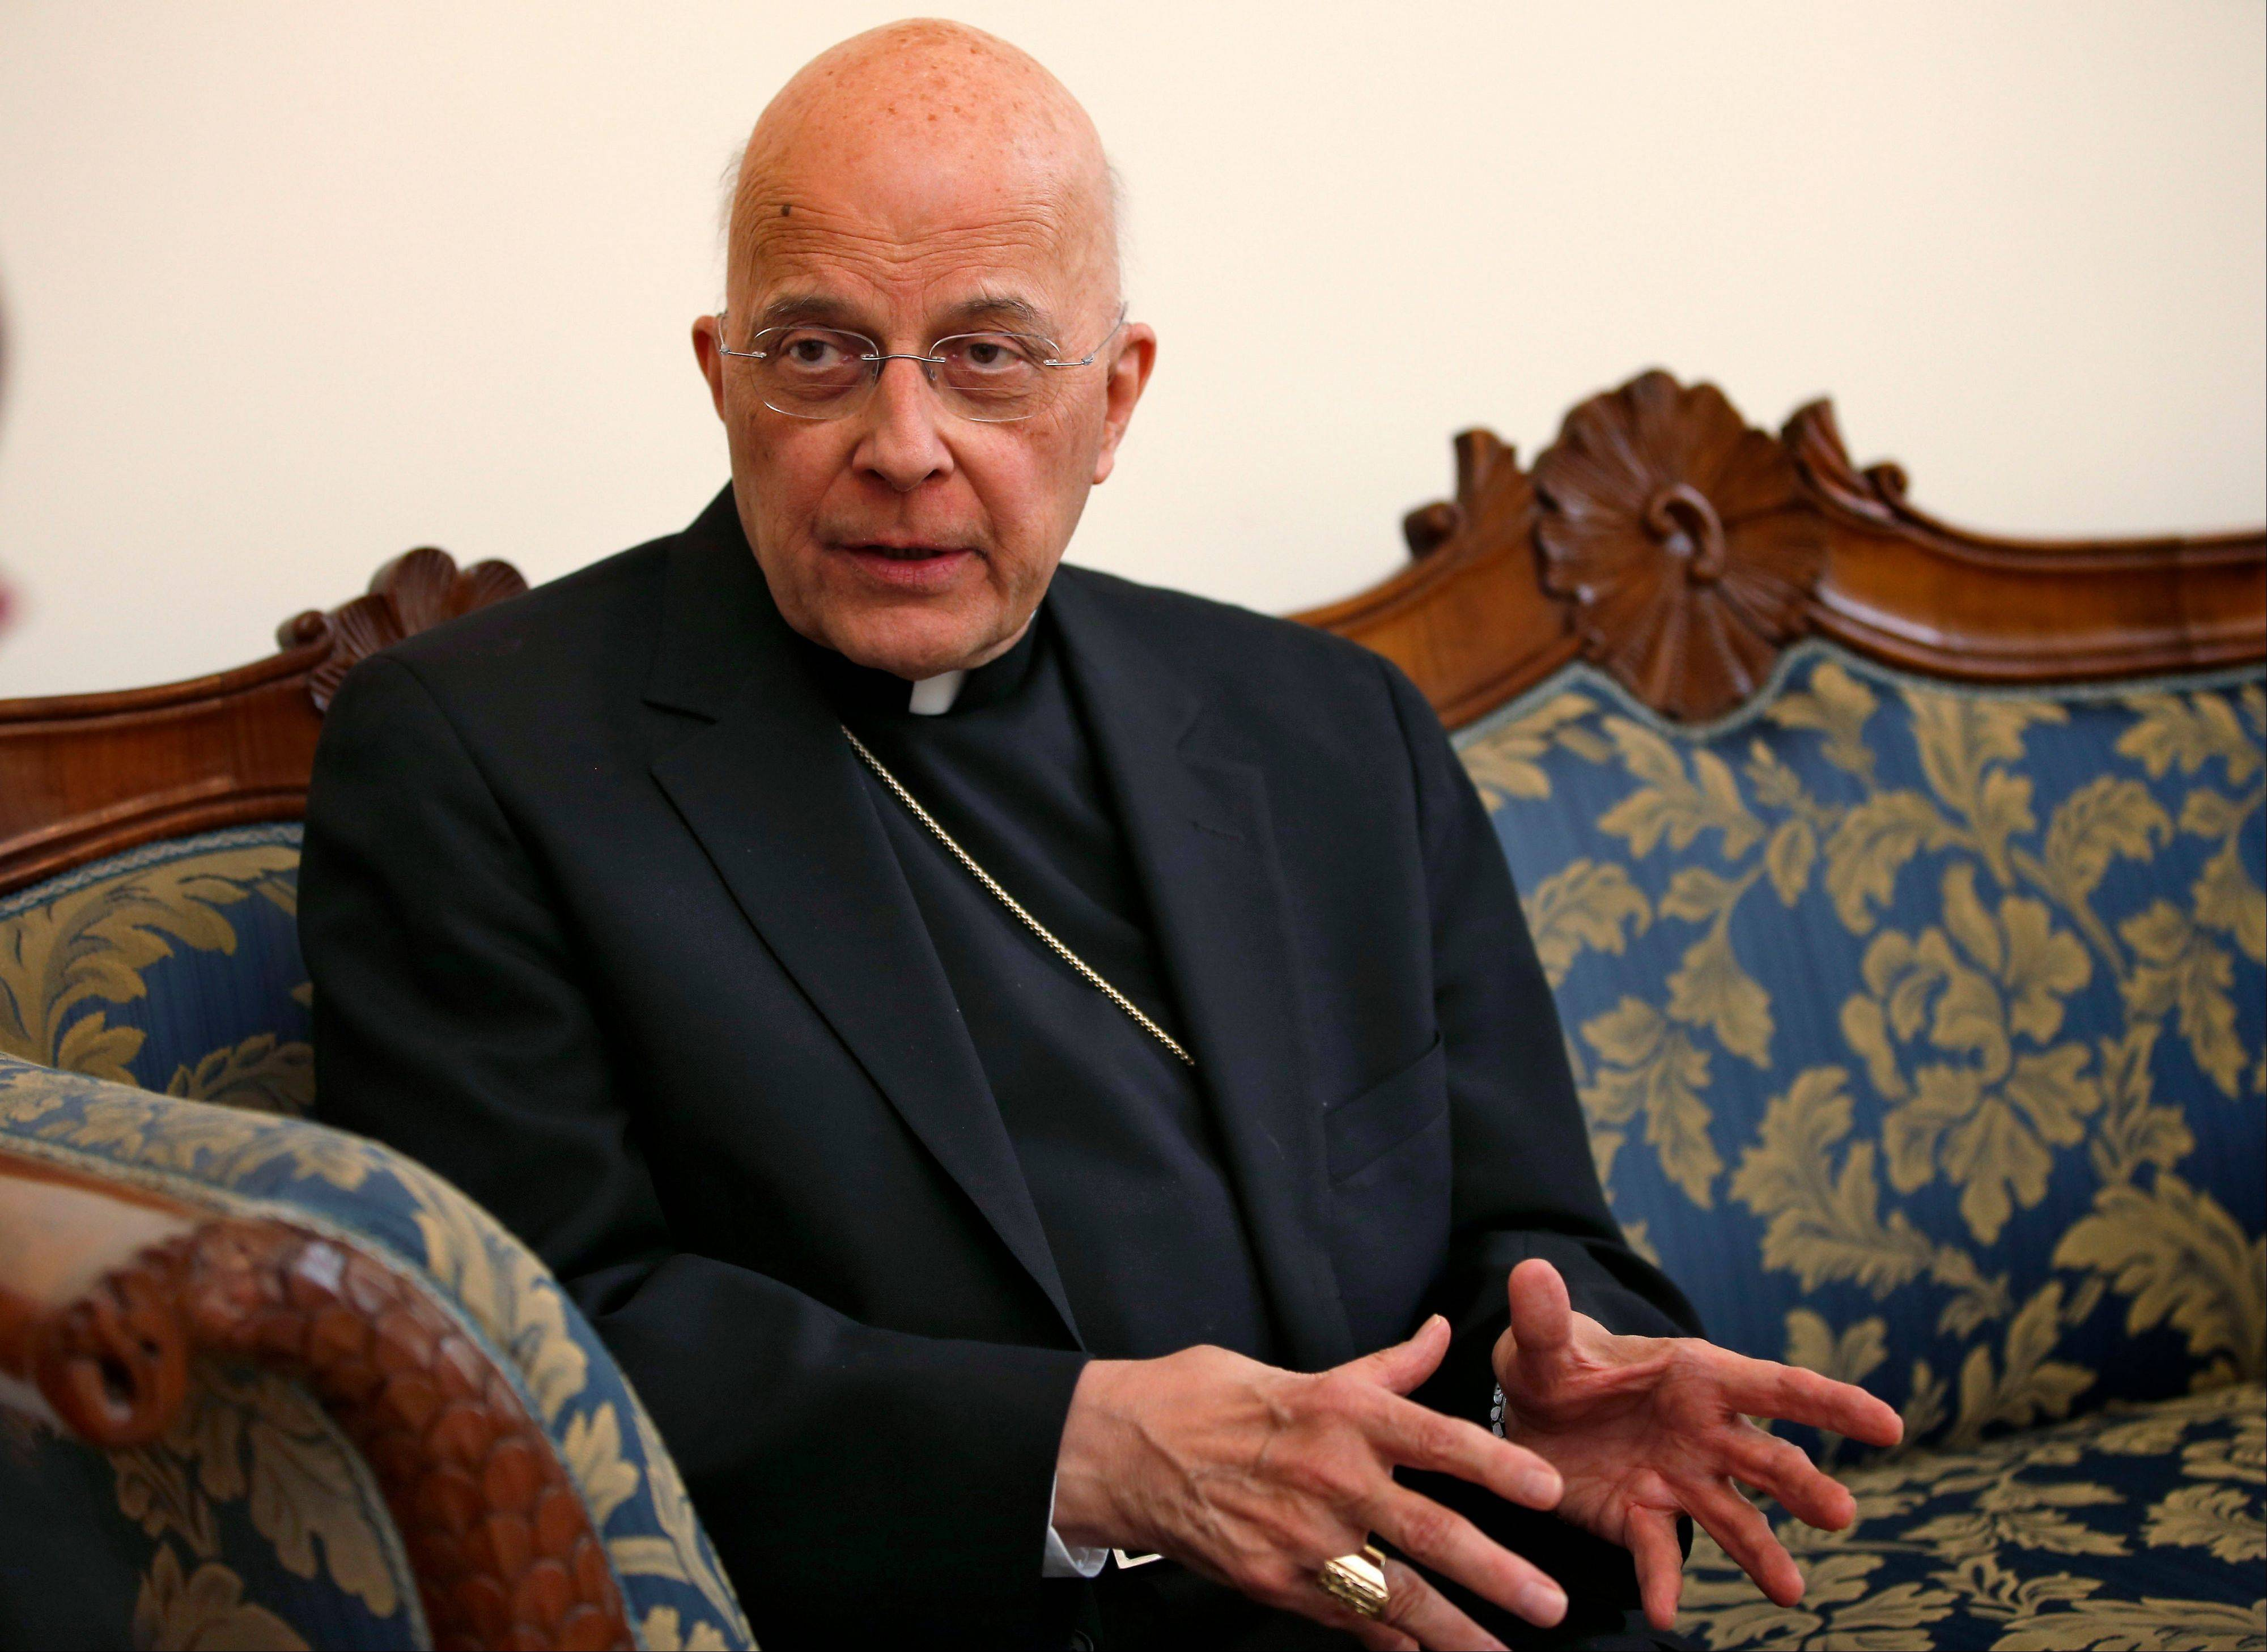 When he turned 75, Cardinal Francis George of Chicago did what the church expects of an archbishop. He submitted his resignation so the pope could decide how much longer the cardinal could serve. But two years and one stunning papal retirement later, the decision now belongs to Pope Francis, in what will be his first major appointment in the United States.